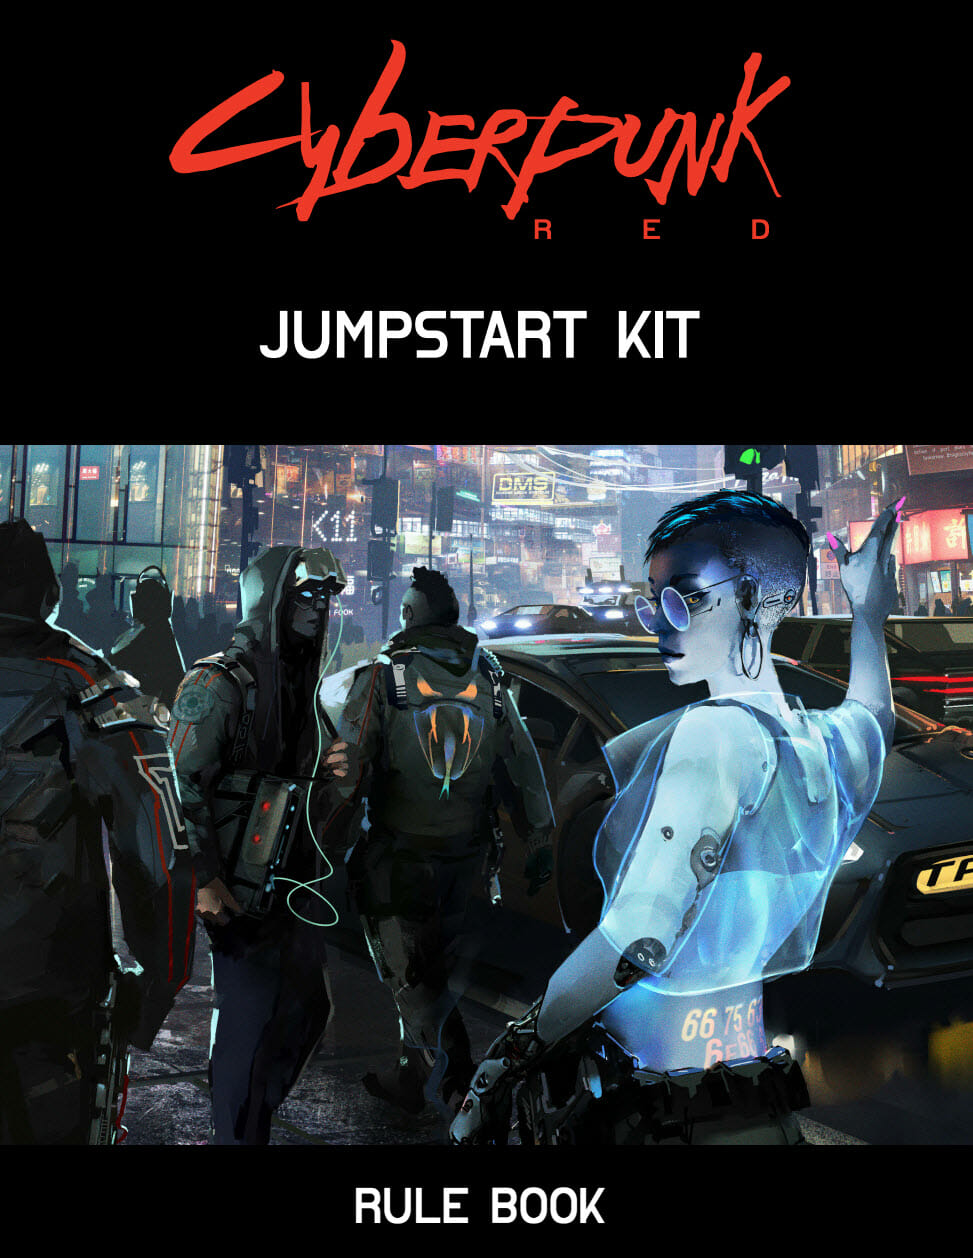 So, you wanna be a cyberpunk? A review of the Cyberpunk Red Jumpstart Kit